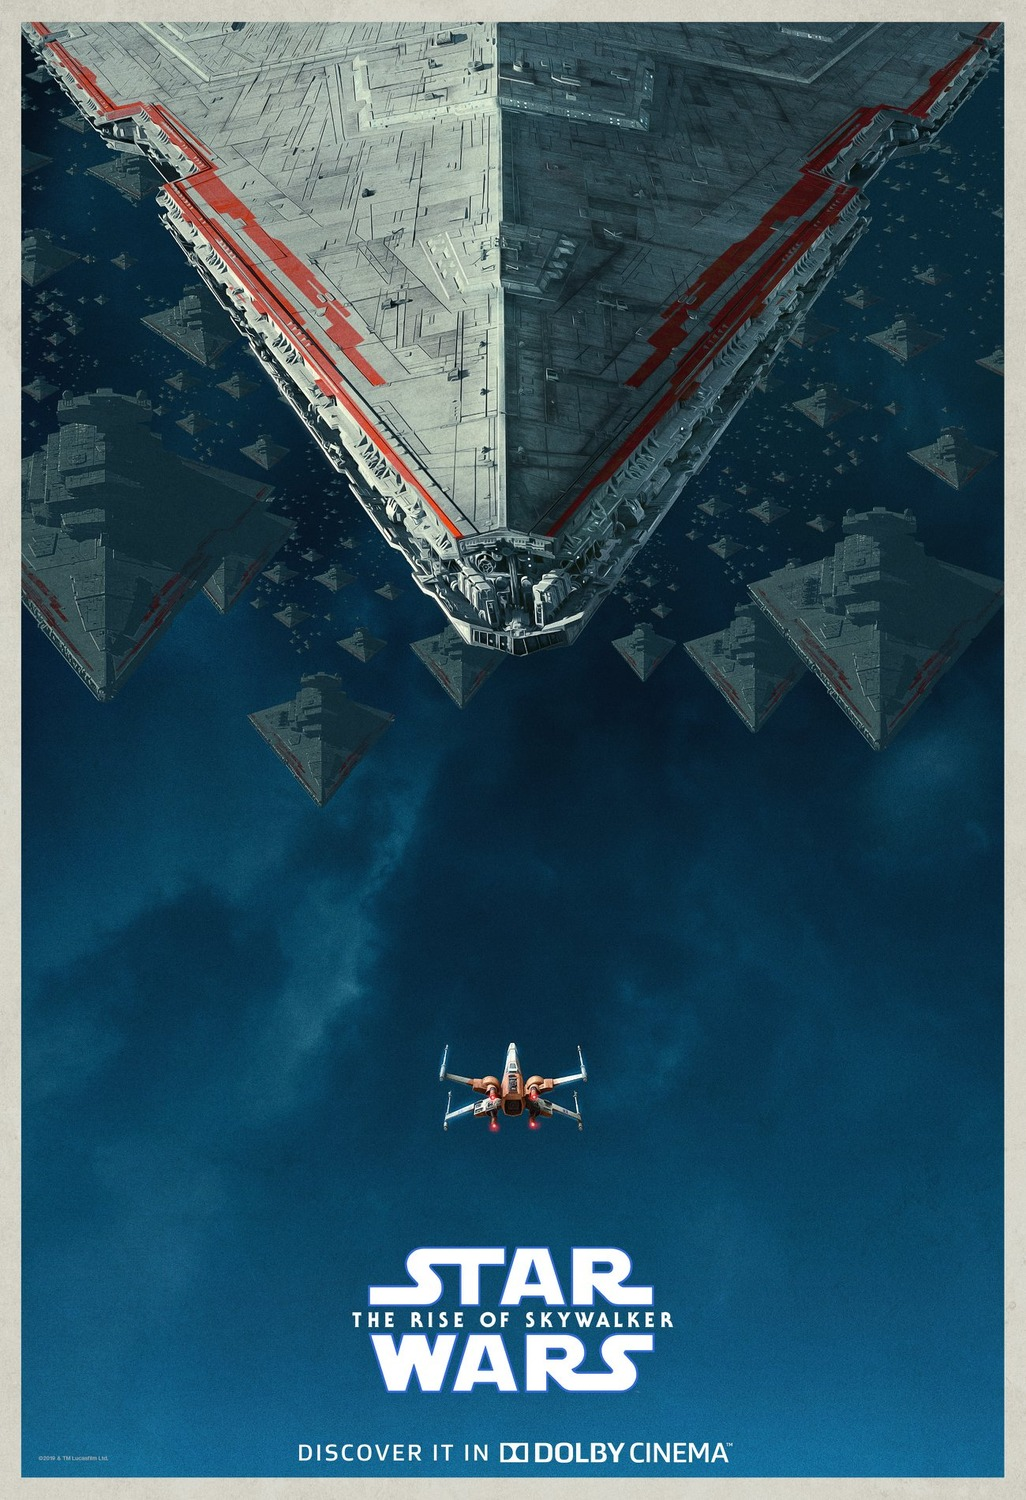 Extra Large Movie Poster Image for Star Wars: The Rise of Skywalker (#6 of 19)